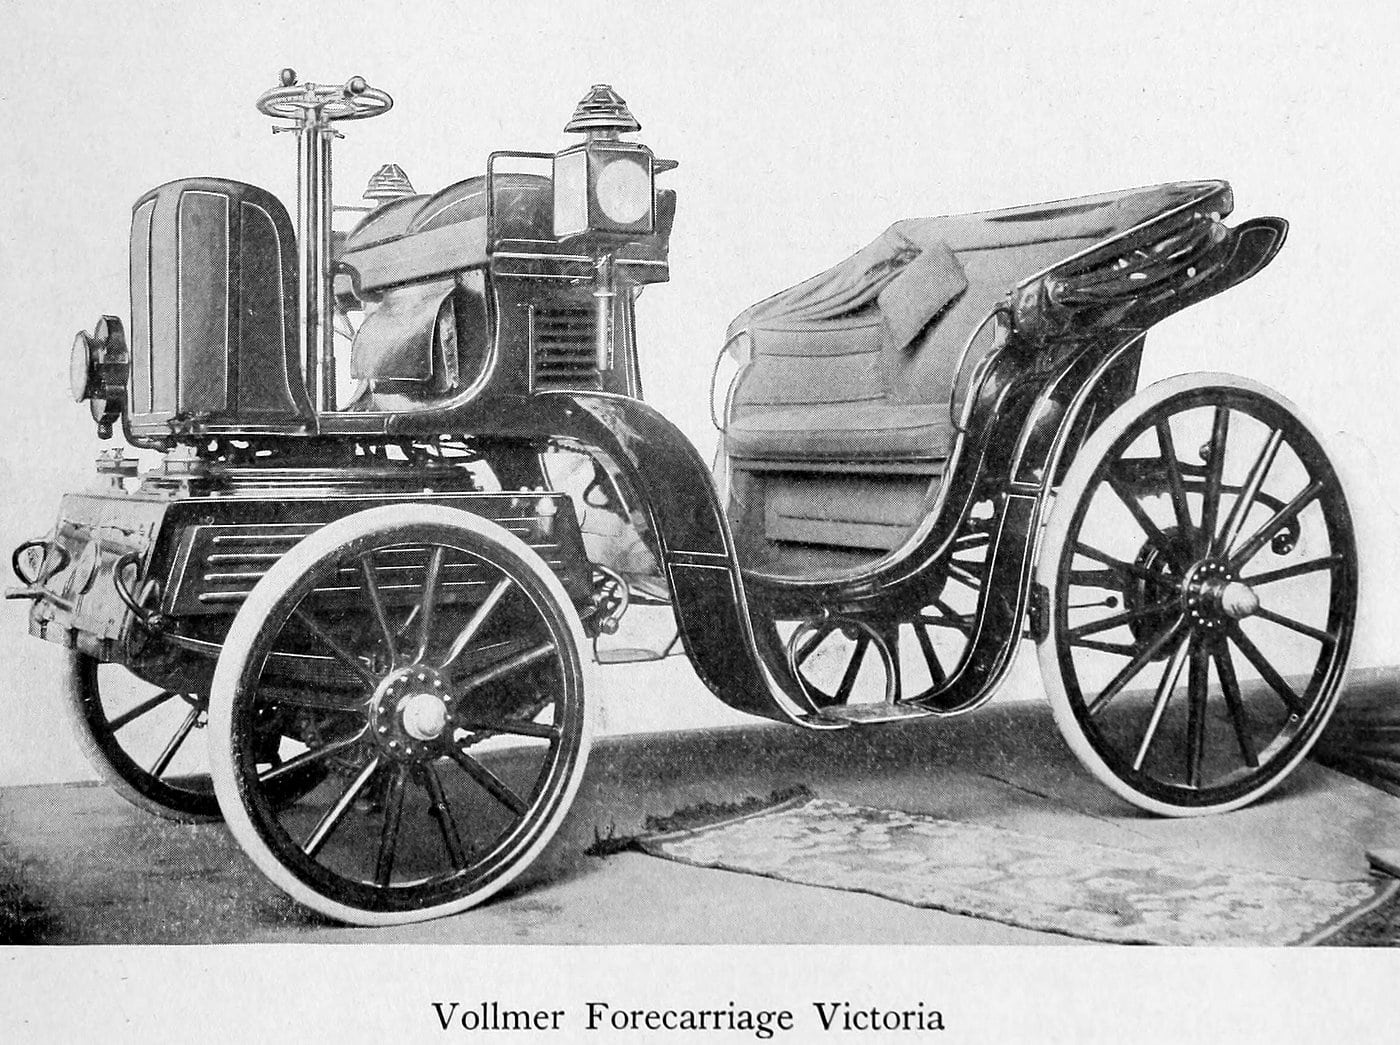 Vollmer Forecarriage Victoria (1899)